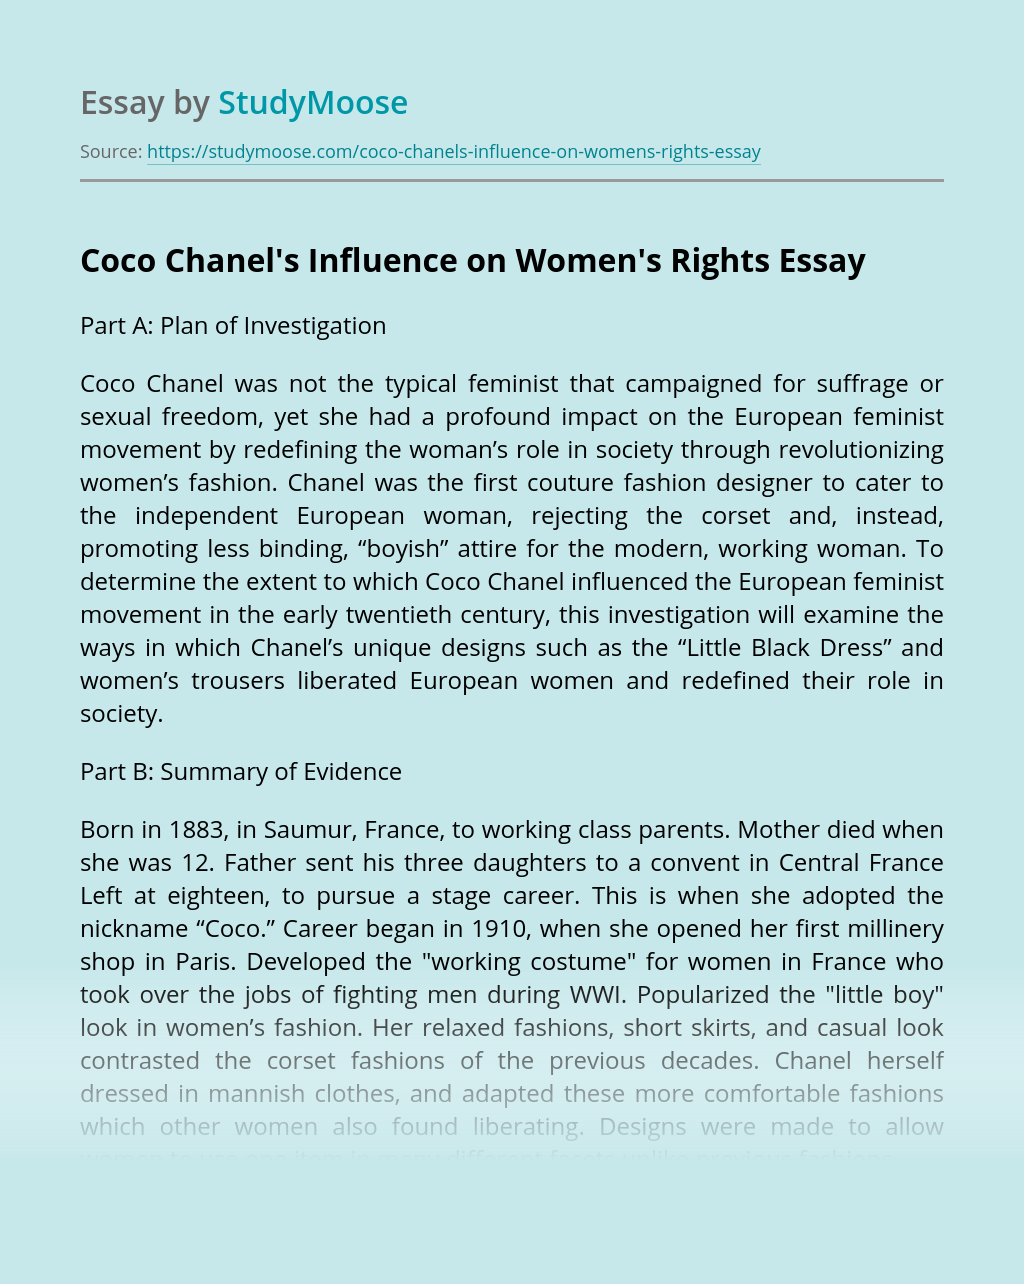 Coco Chanel's Influence on Women's Rights